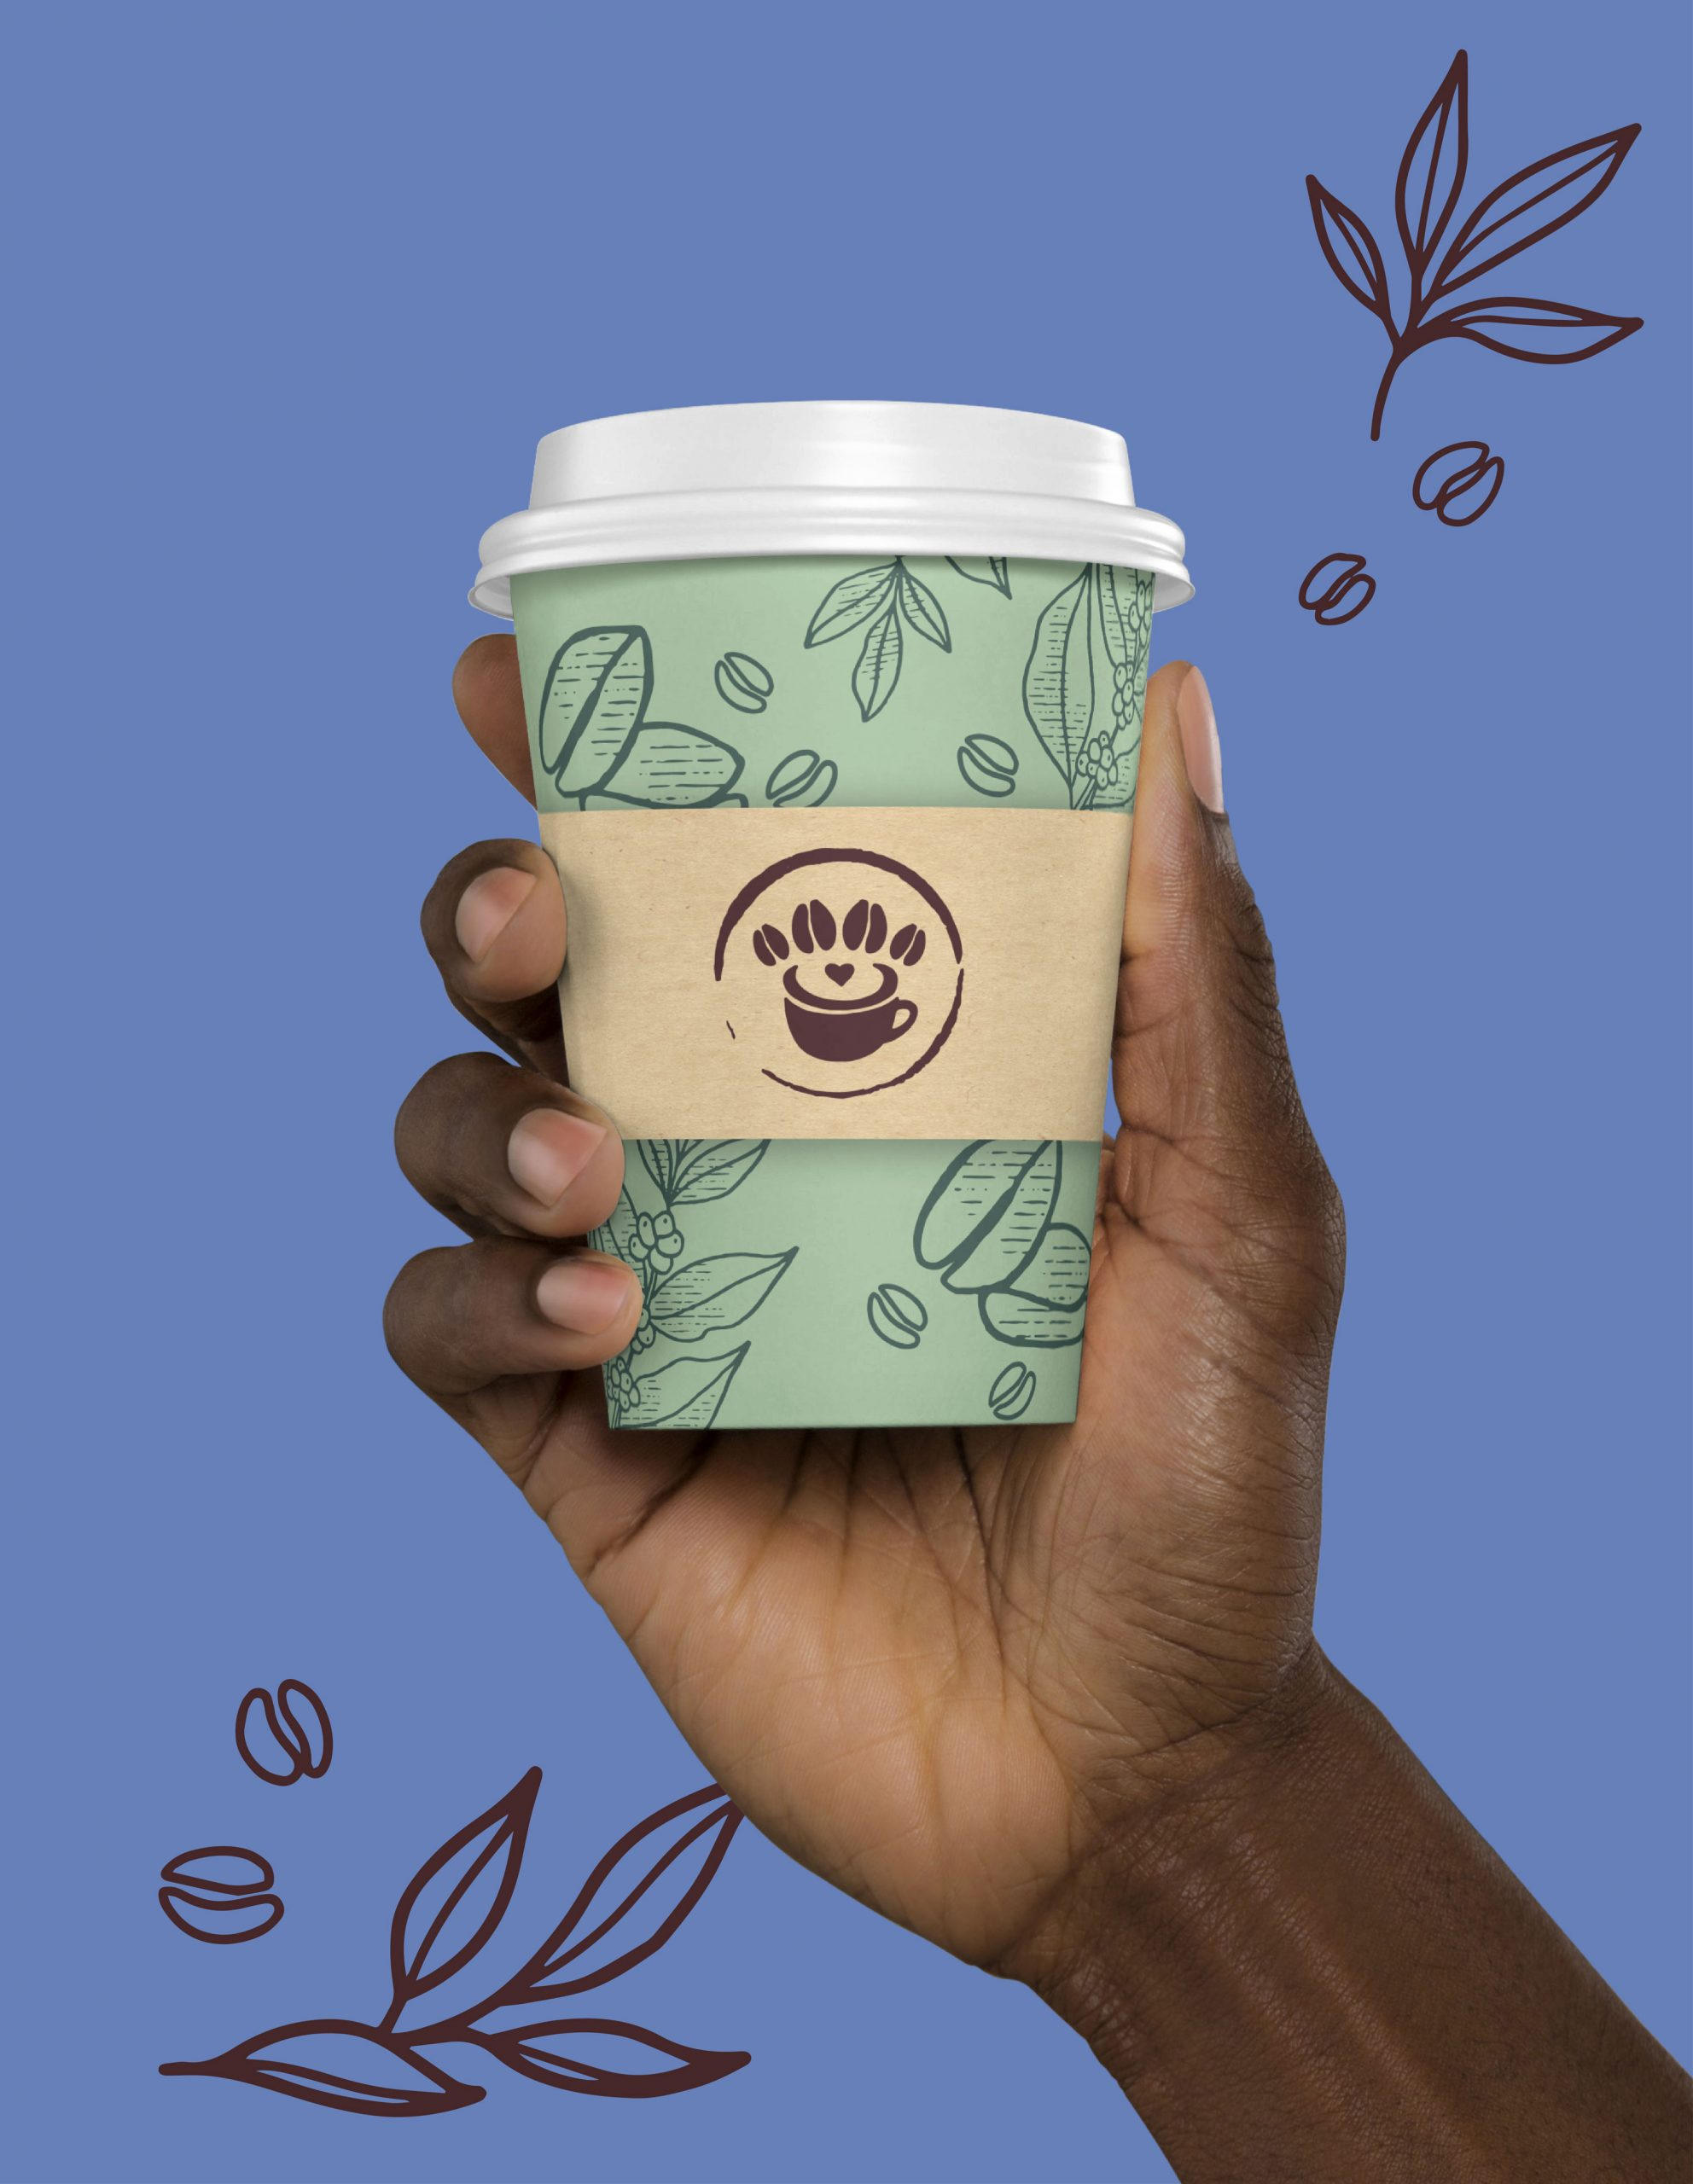 hand holding a to-go coffee cup